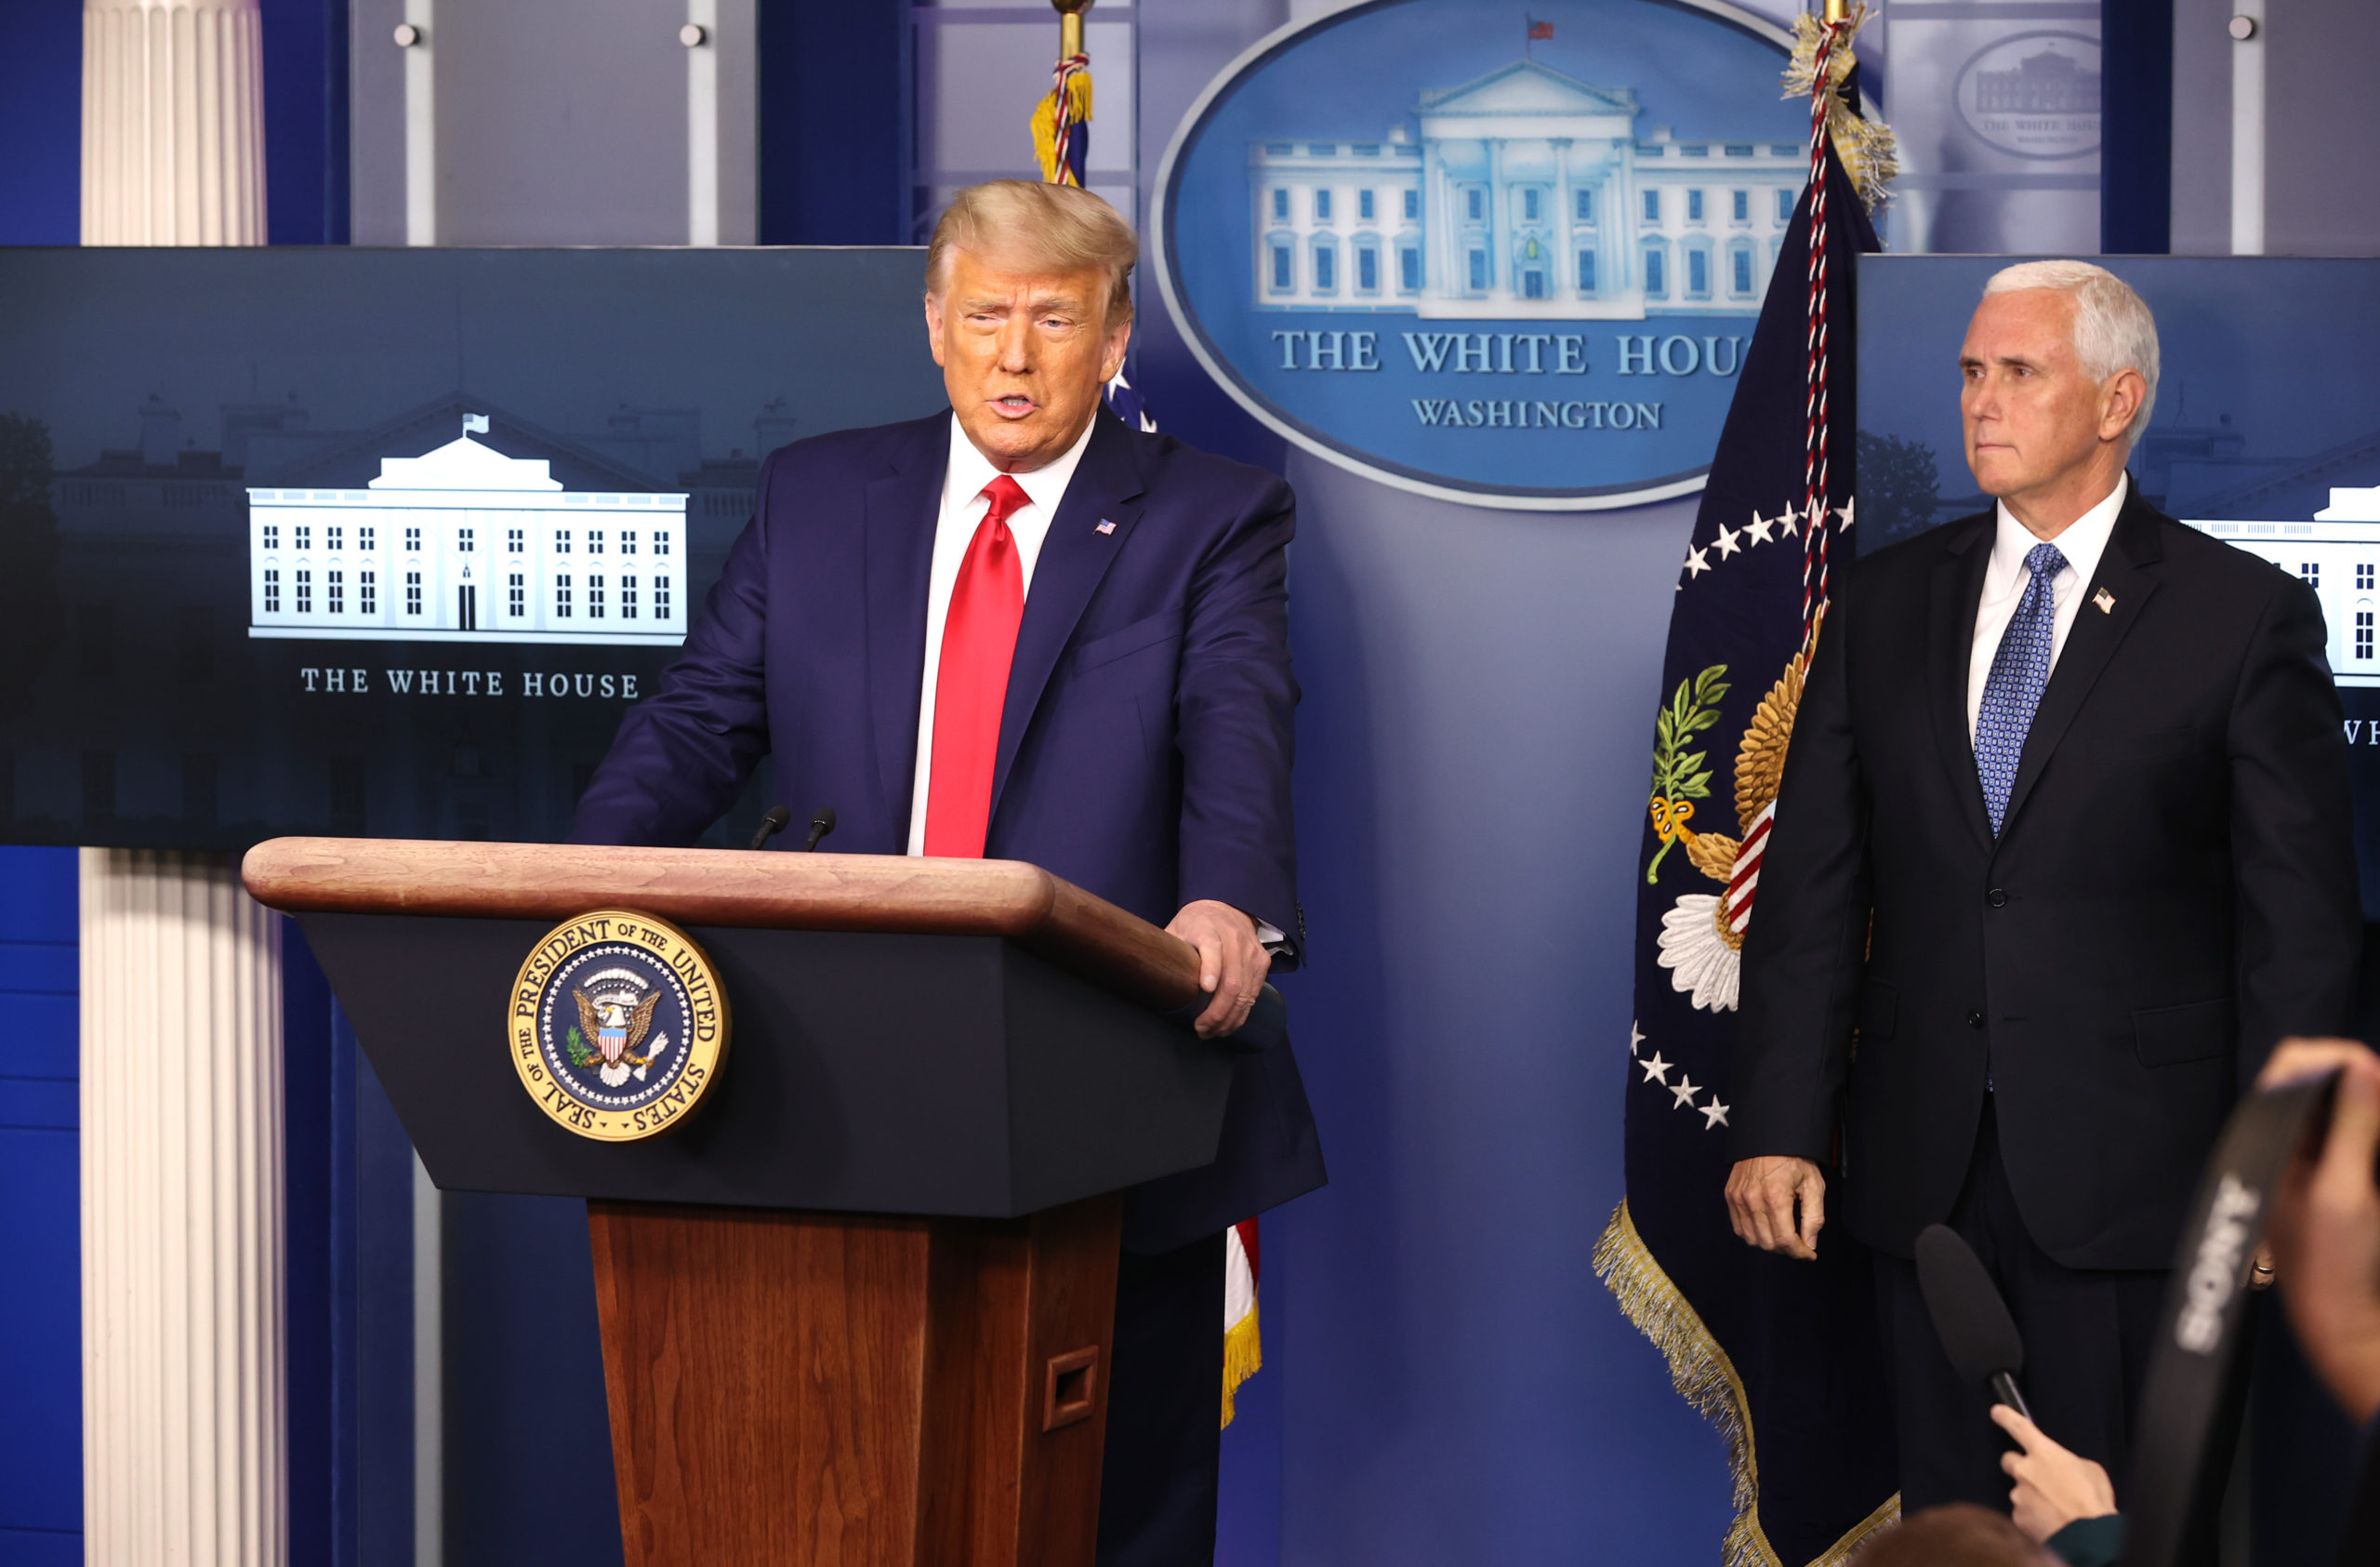 WASHINGTON, DC - NOVEMBER 24: U.S. President Donald Trump (L) speaks as Vice President Mike Pence (R) looks on in the James Brady Press Briefing Room at the White House on November 24, 2020 in Washington, DC. Trump made brief remarks about the stock market hitting 30,000. (Photo by Chip Somodevilla/Getty Images)